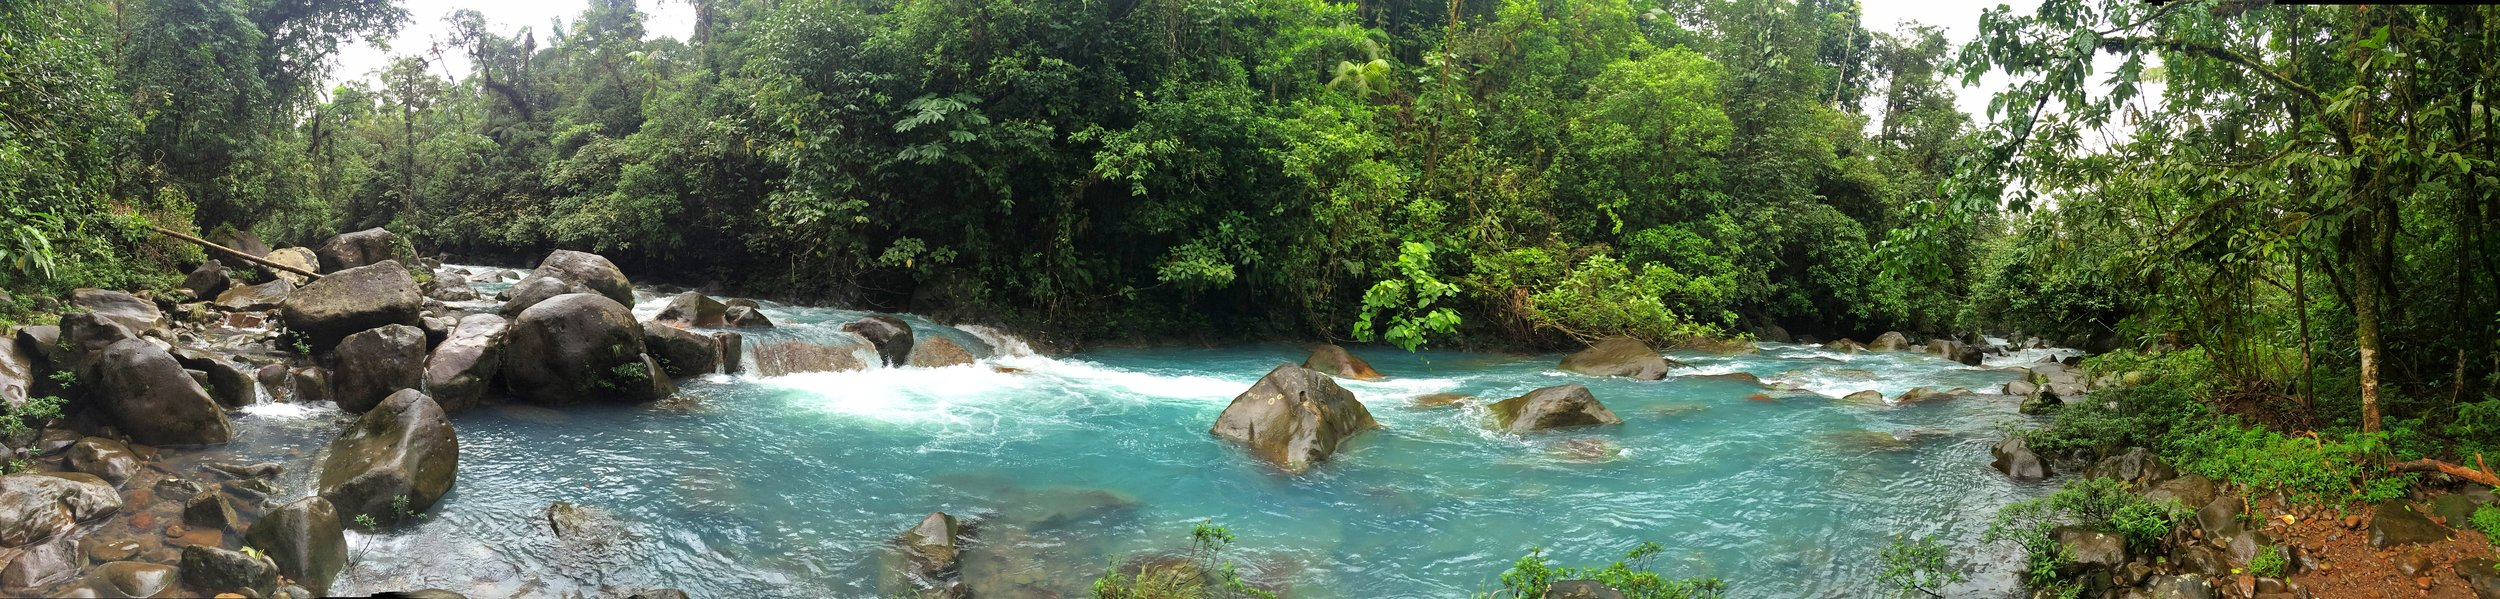 For the adventurous traveler, the Rio Celeste is a stunning sight to behold in the northern region of Costa Rica.